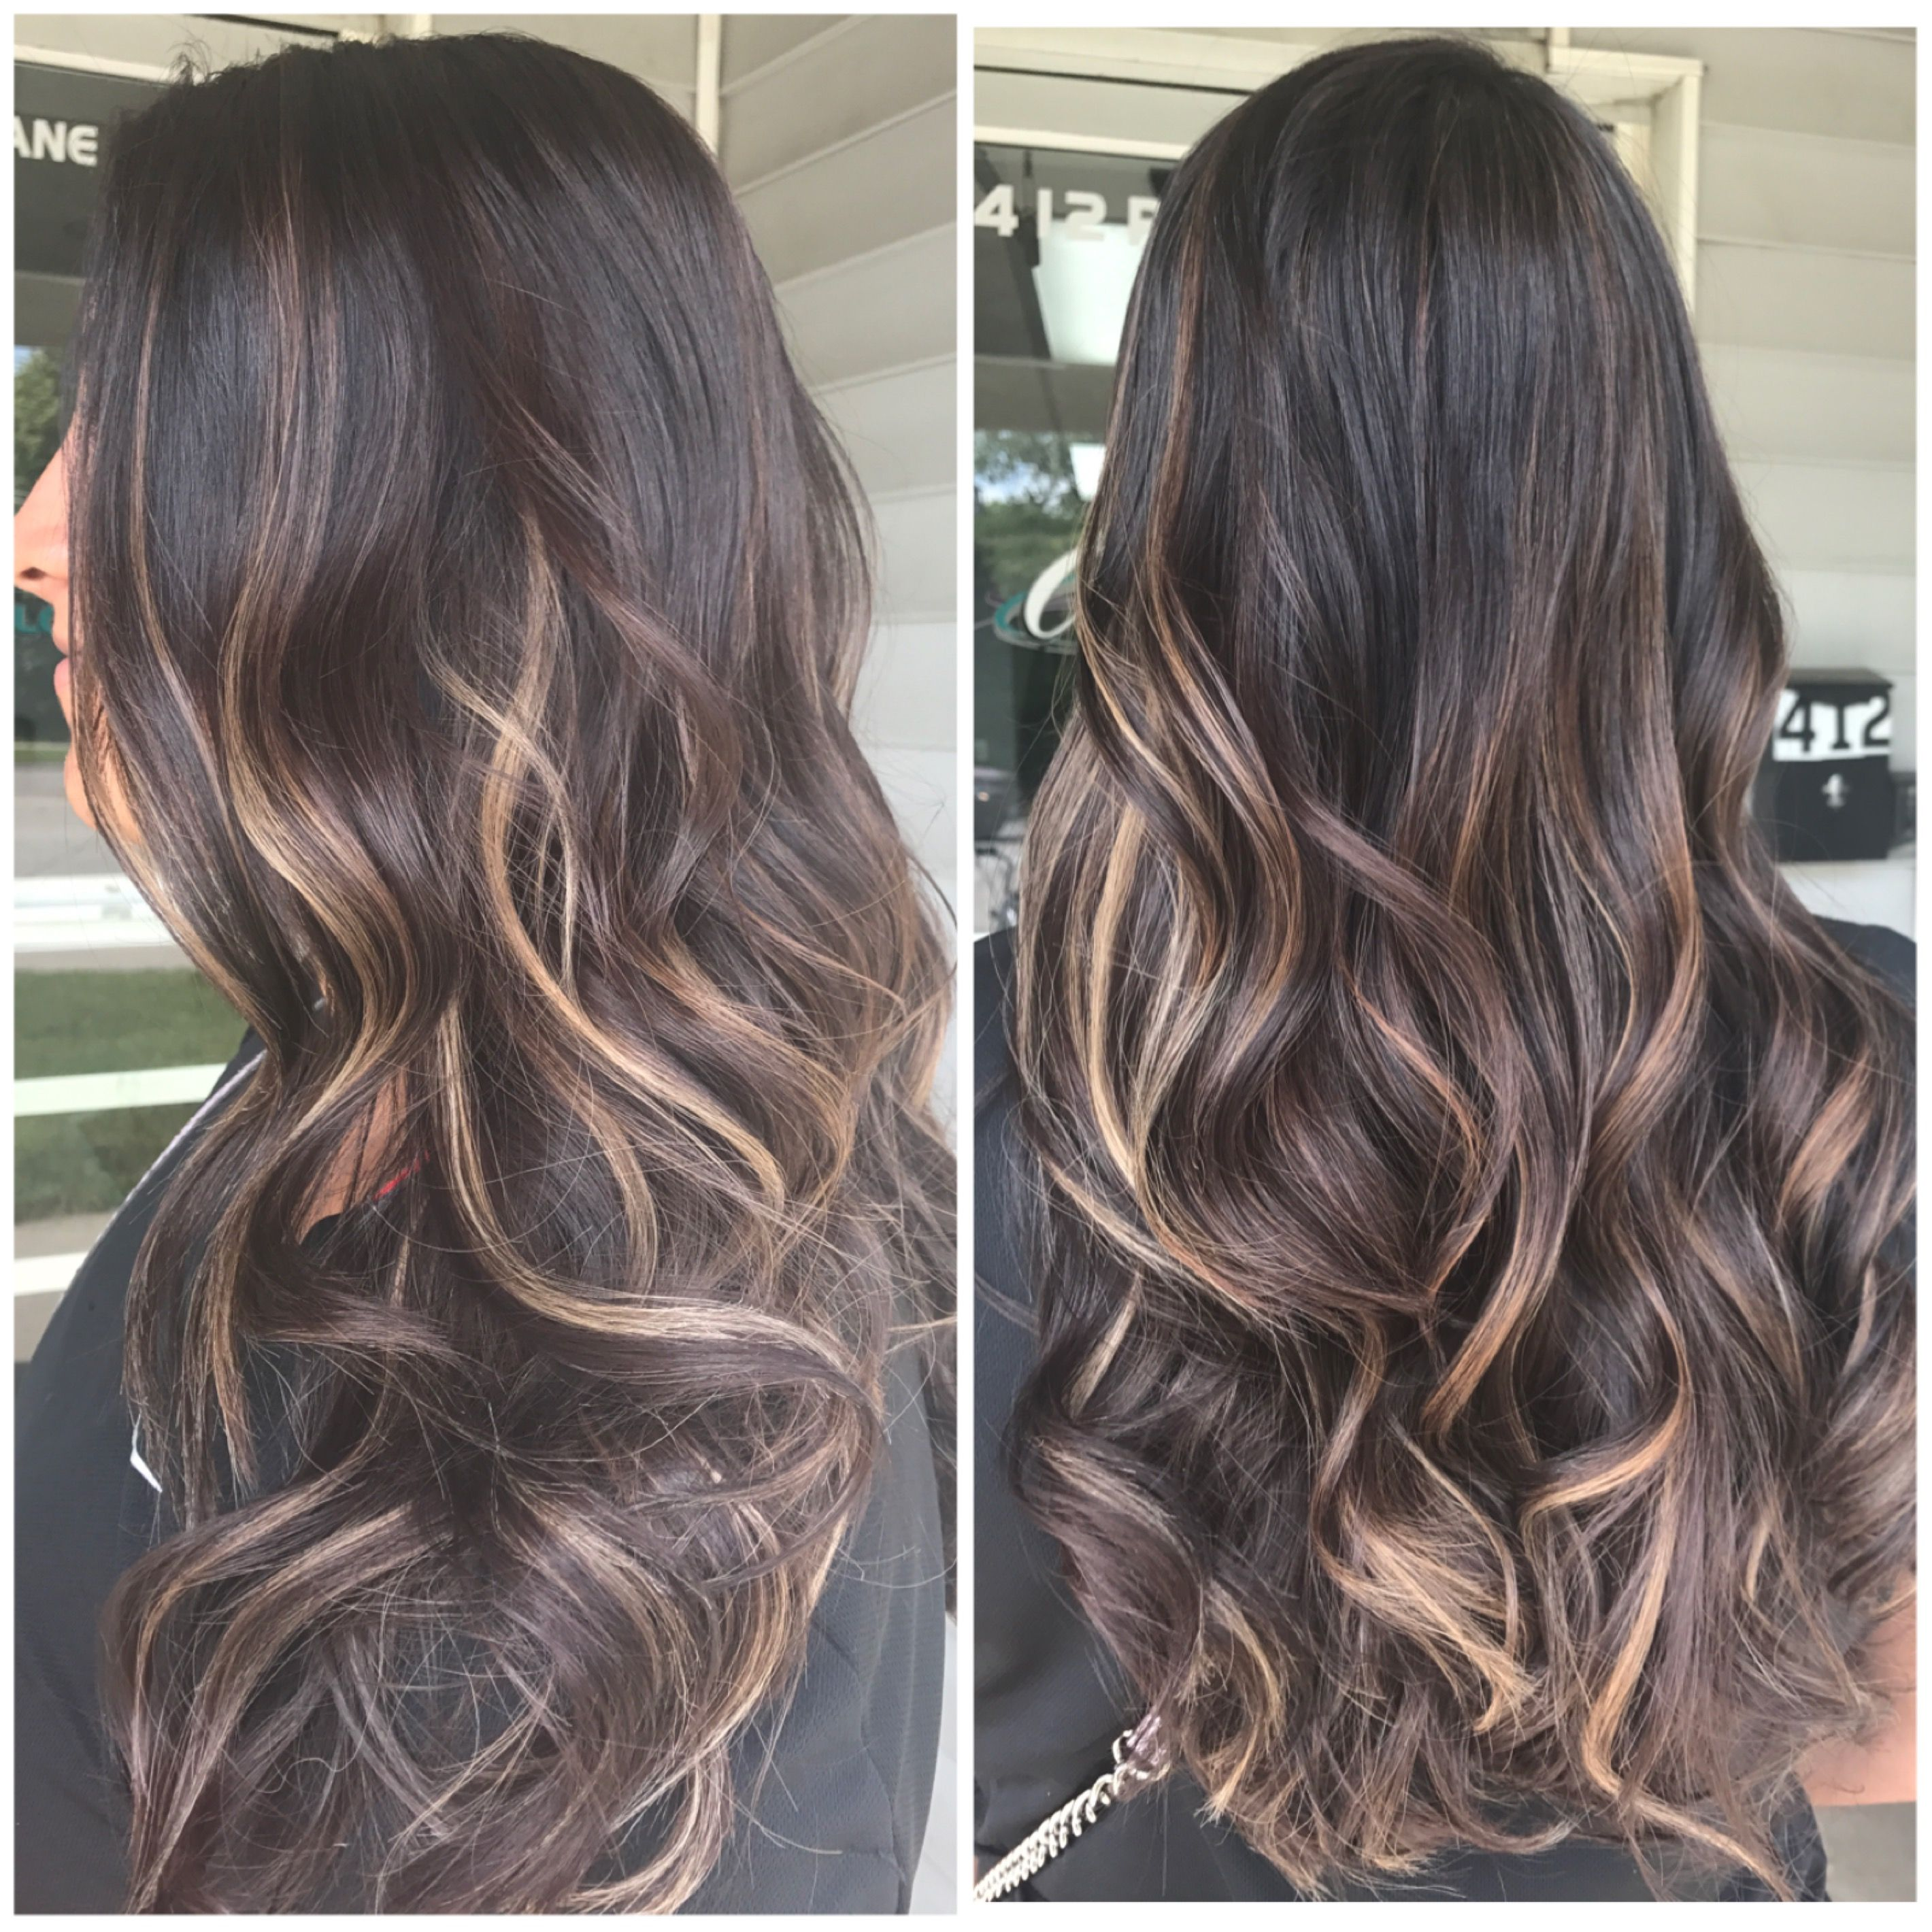 Balayage on long brown hair Toned to a caramel color Beautiful